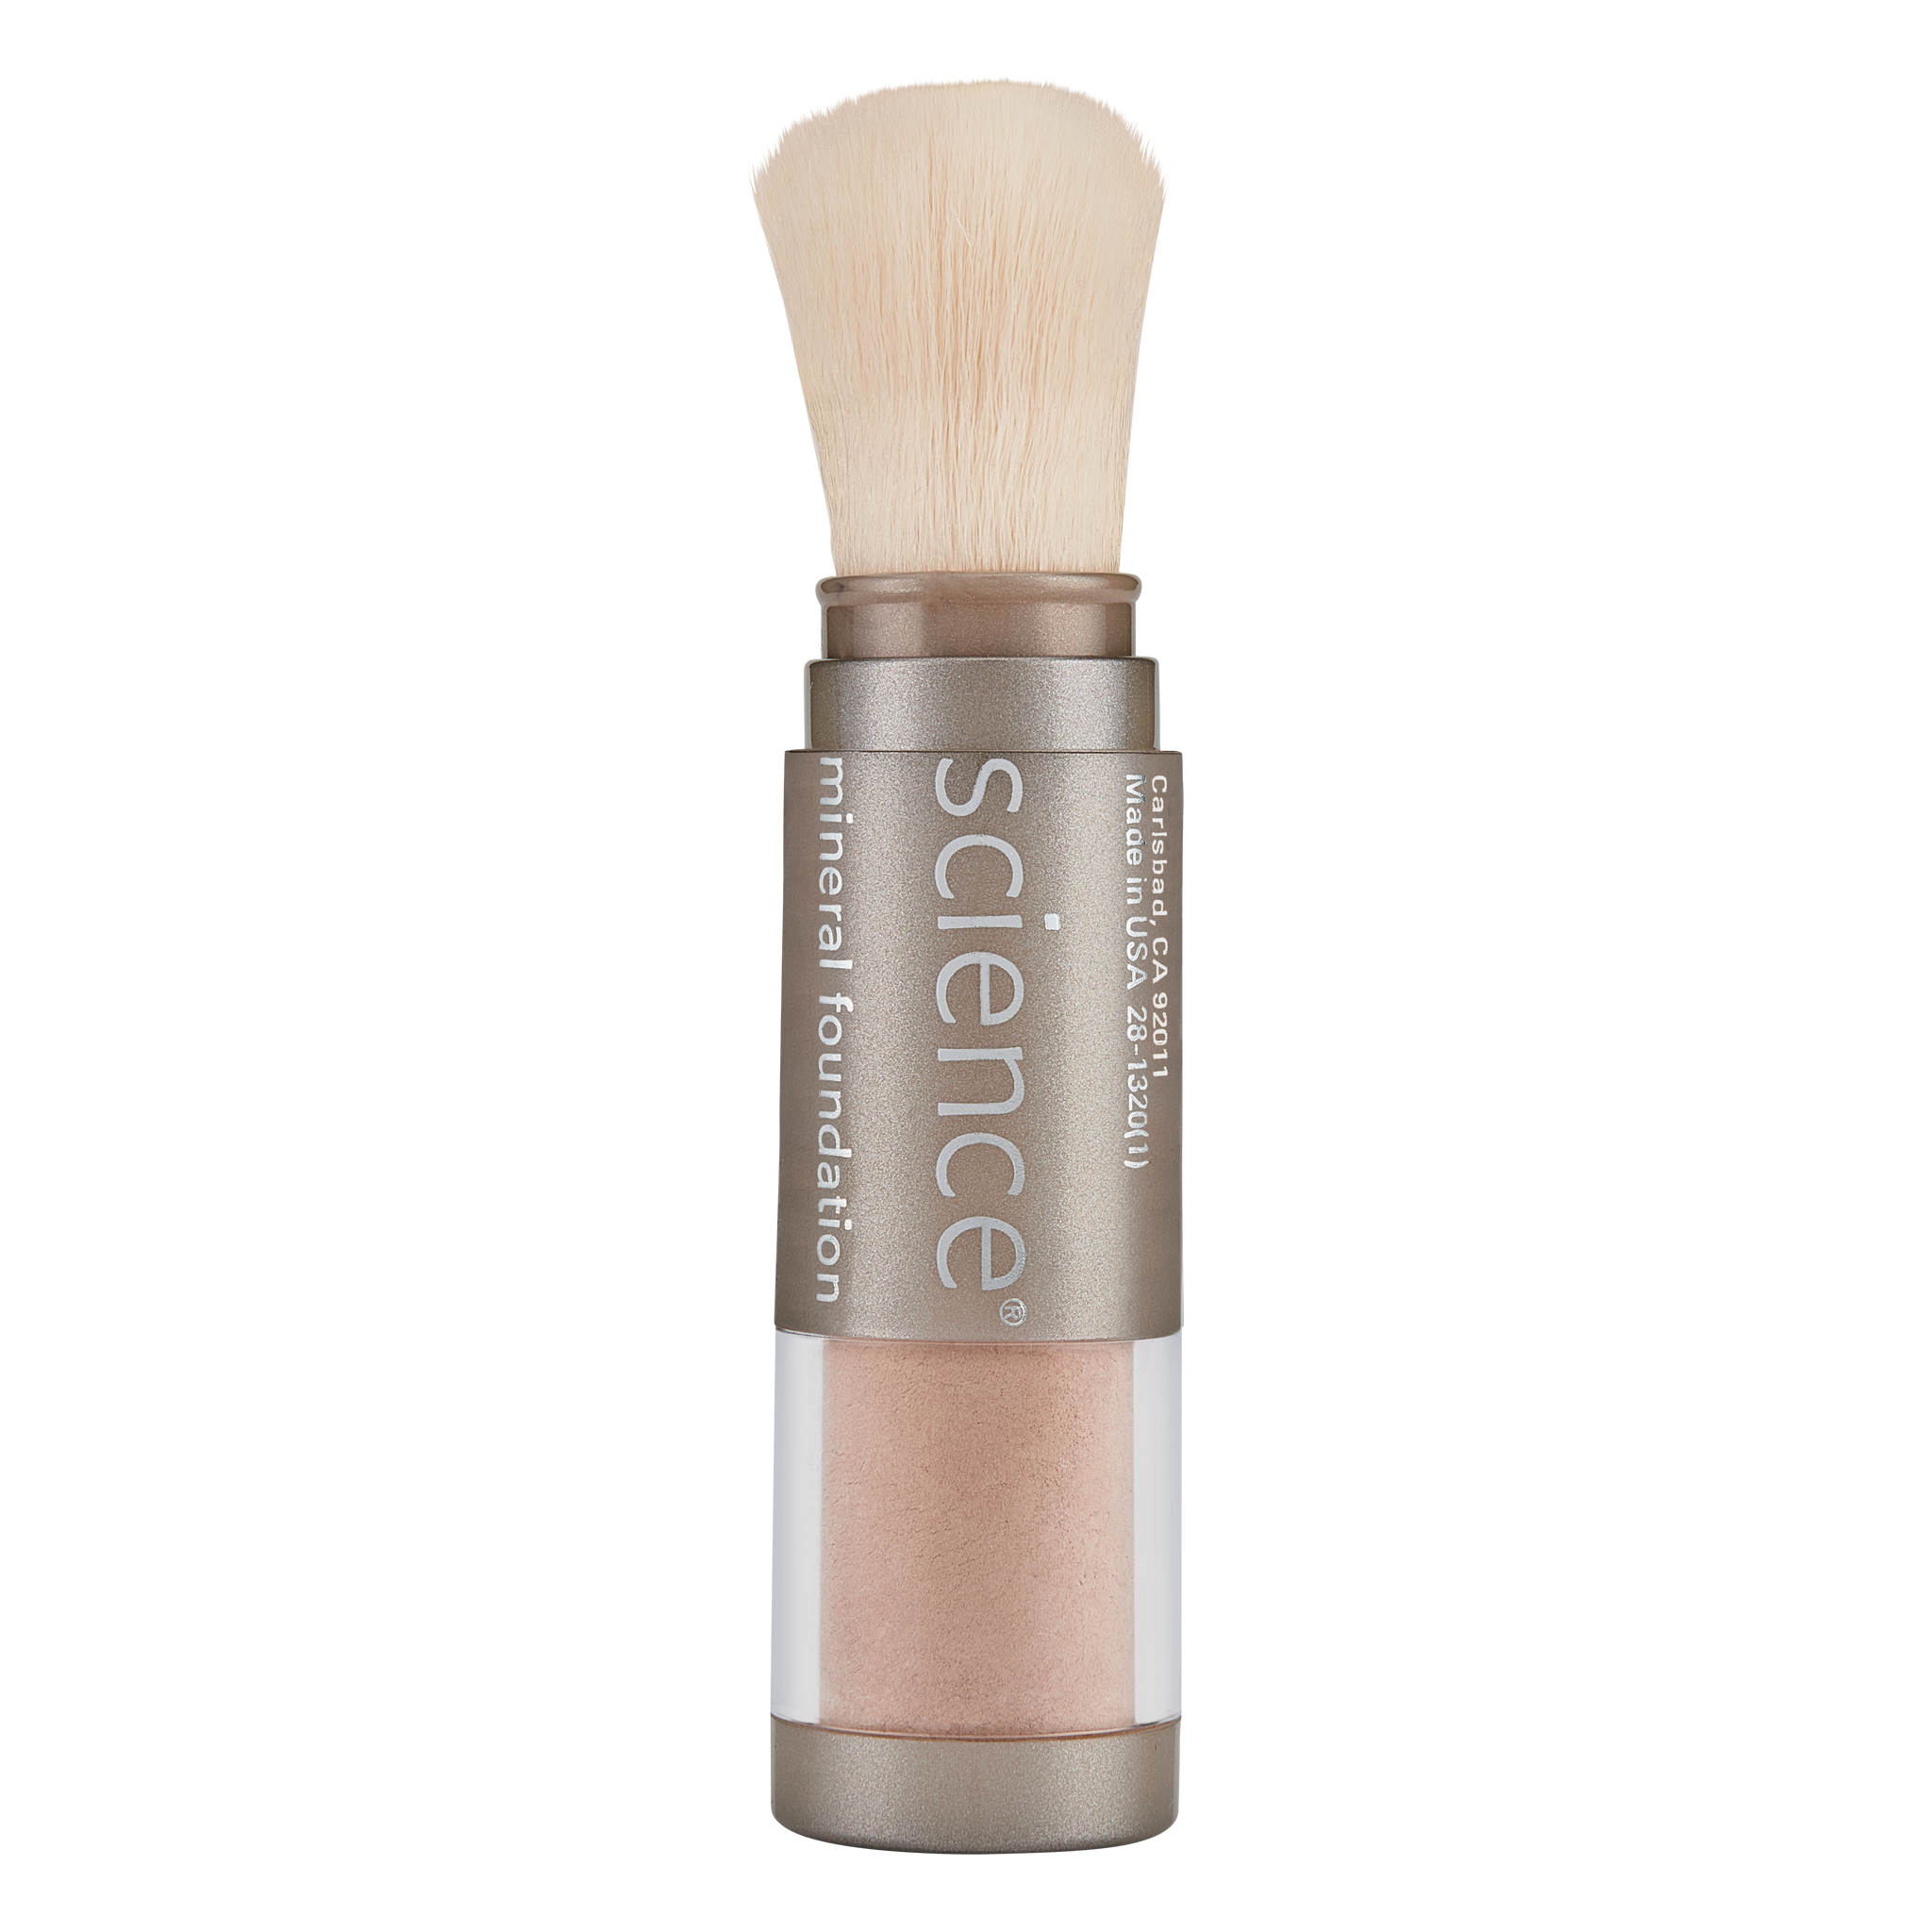 Loose Mineral Foundation Brush SPF 20 || hide